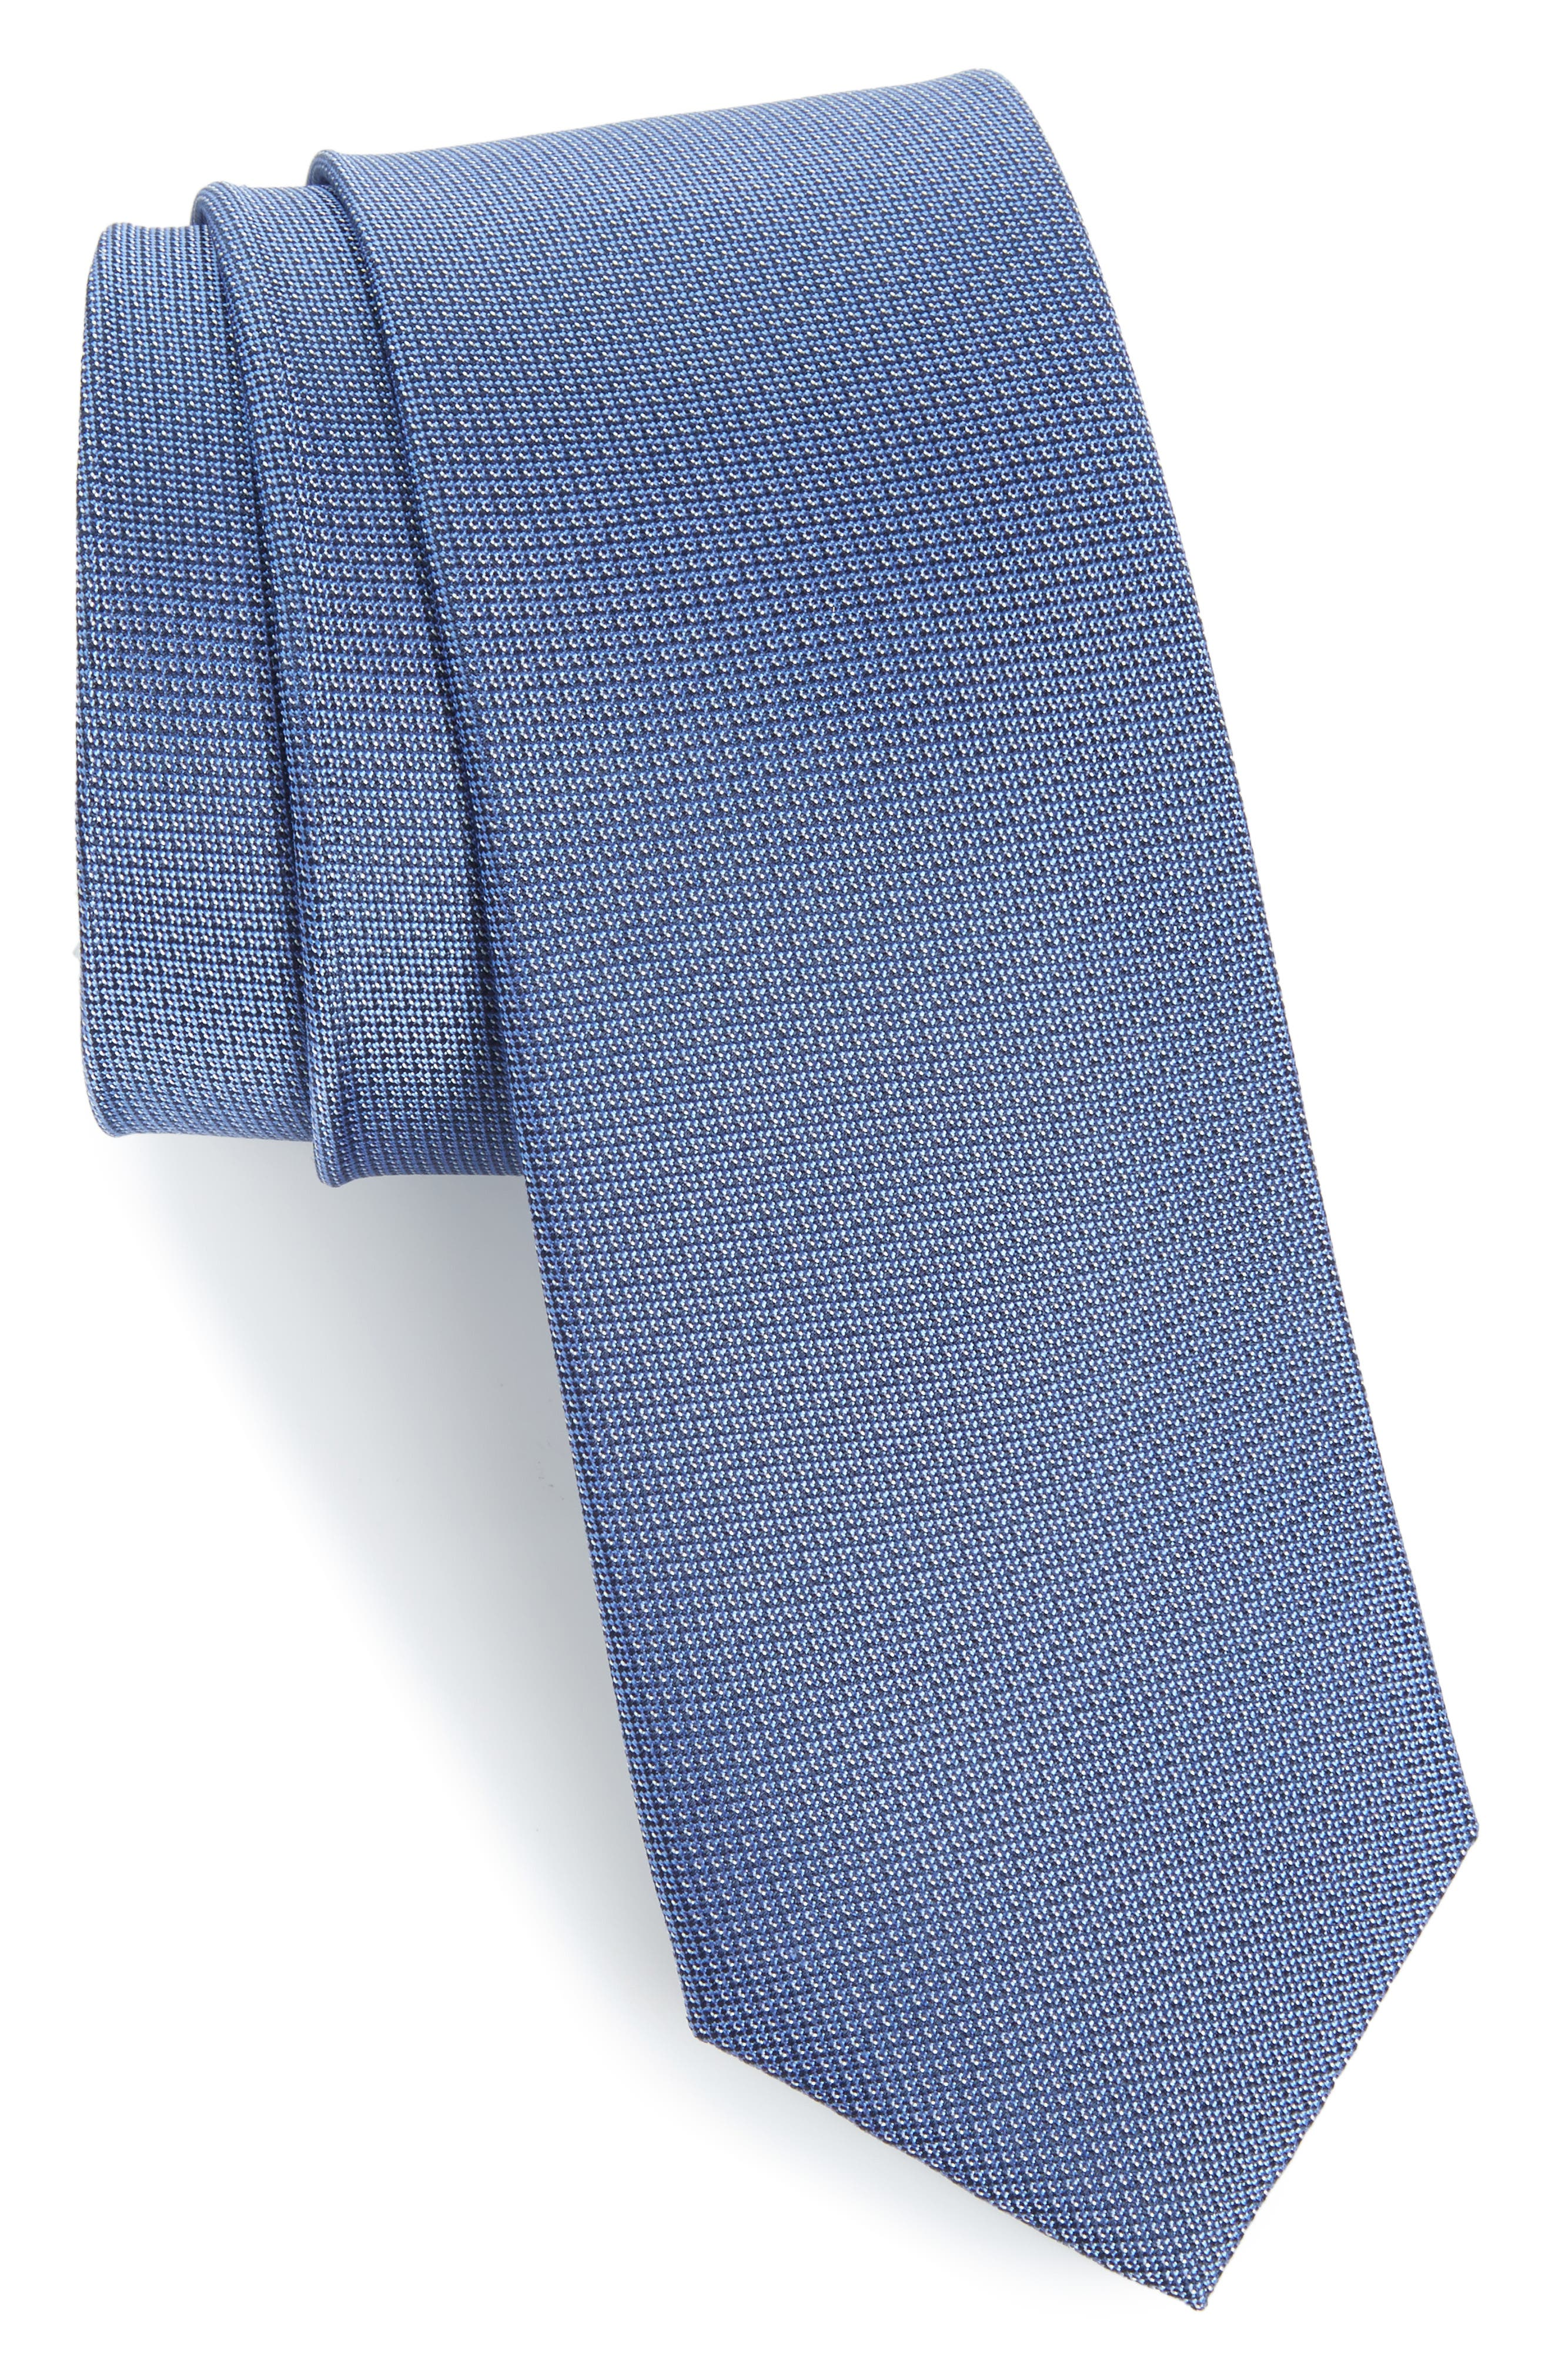 Main Image - Calibrate Eternity Unsolid Solid Silk Skinny Tie